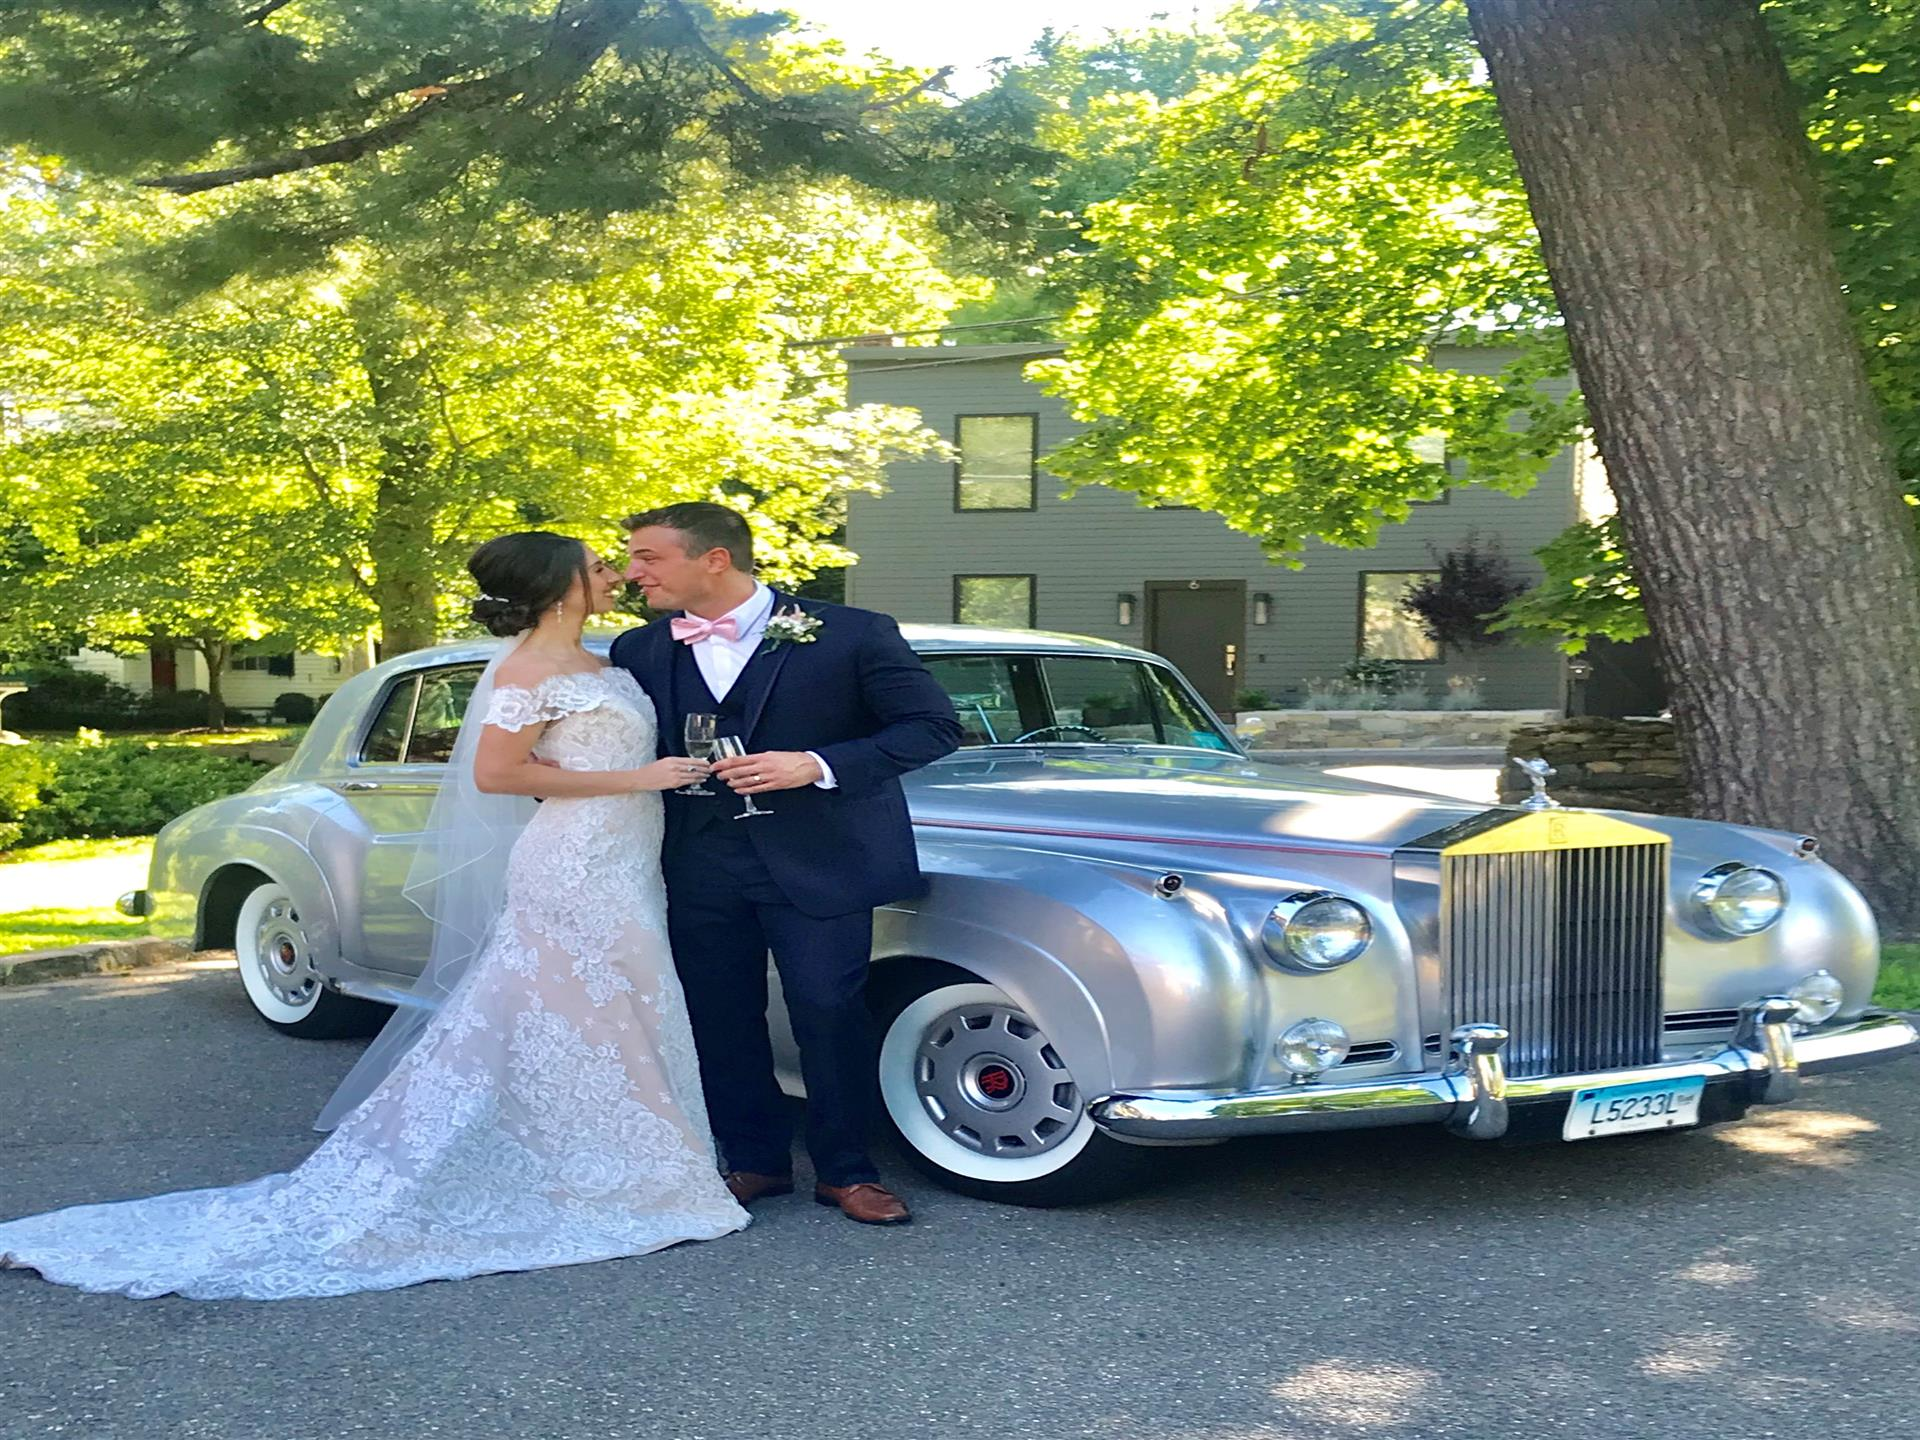 Bride and groom with champagne glasses standing next to rolls royce in parking lot with green building in background